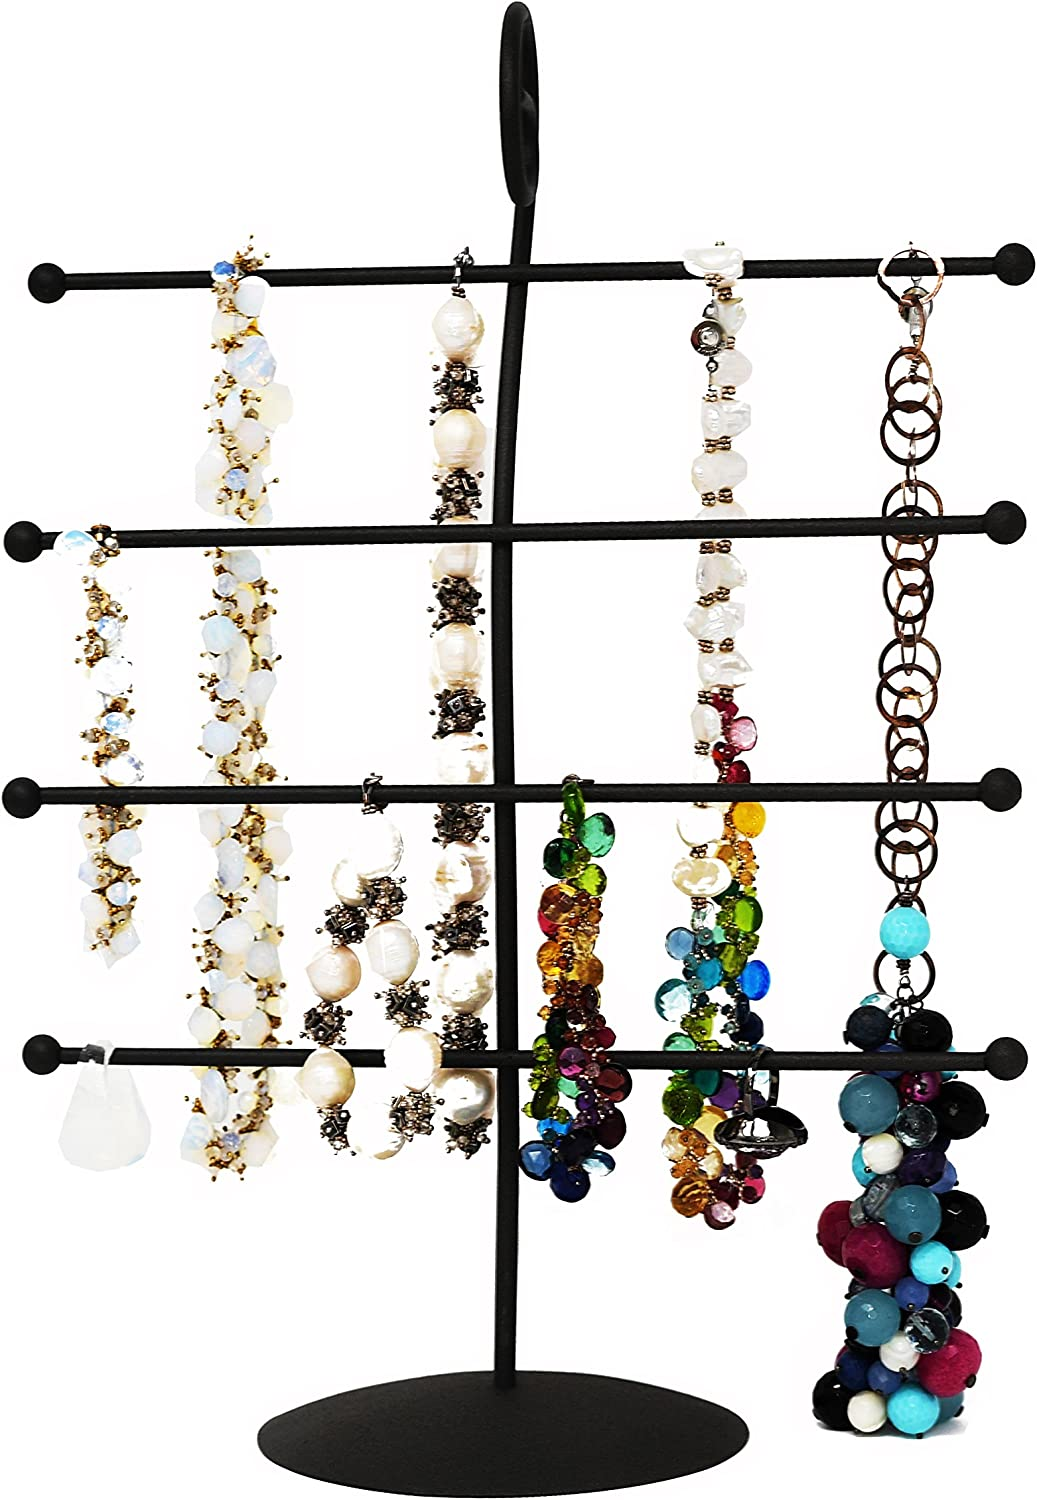 Arad Decorative Black Scroll 4 Tier Bracelet Necklace Earrings Rings Watches Jewelry Organizer Amazon Ca Home Kitchen